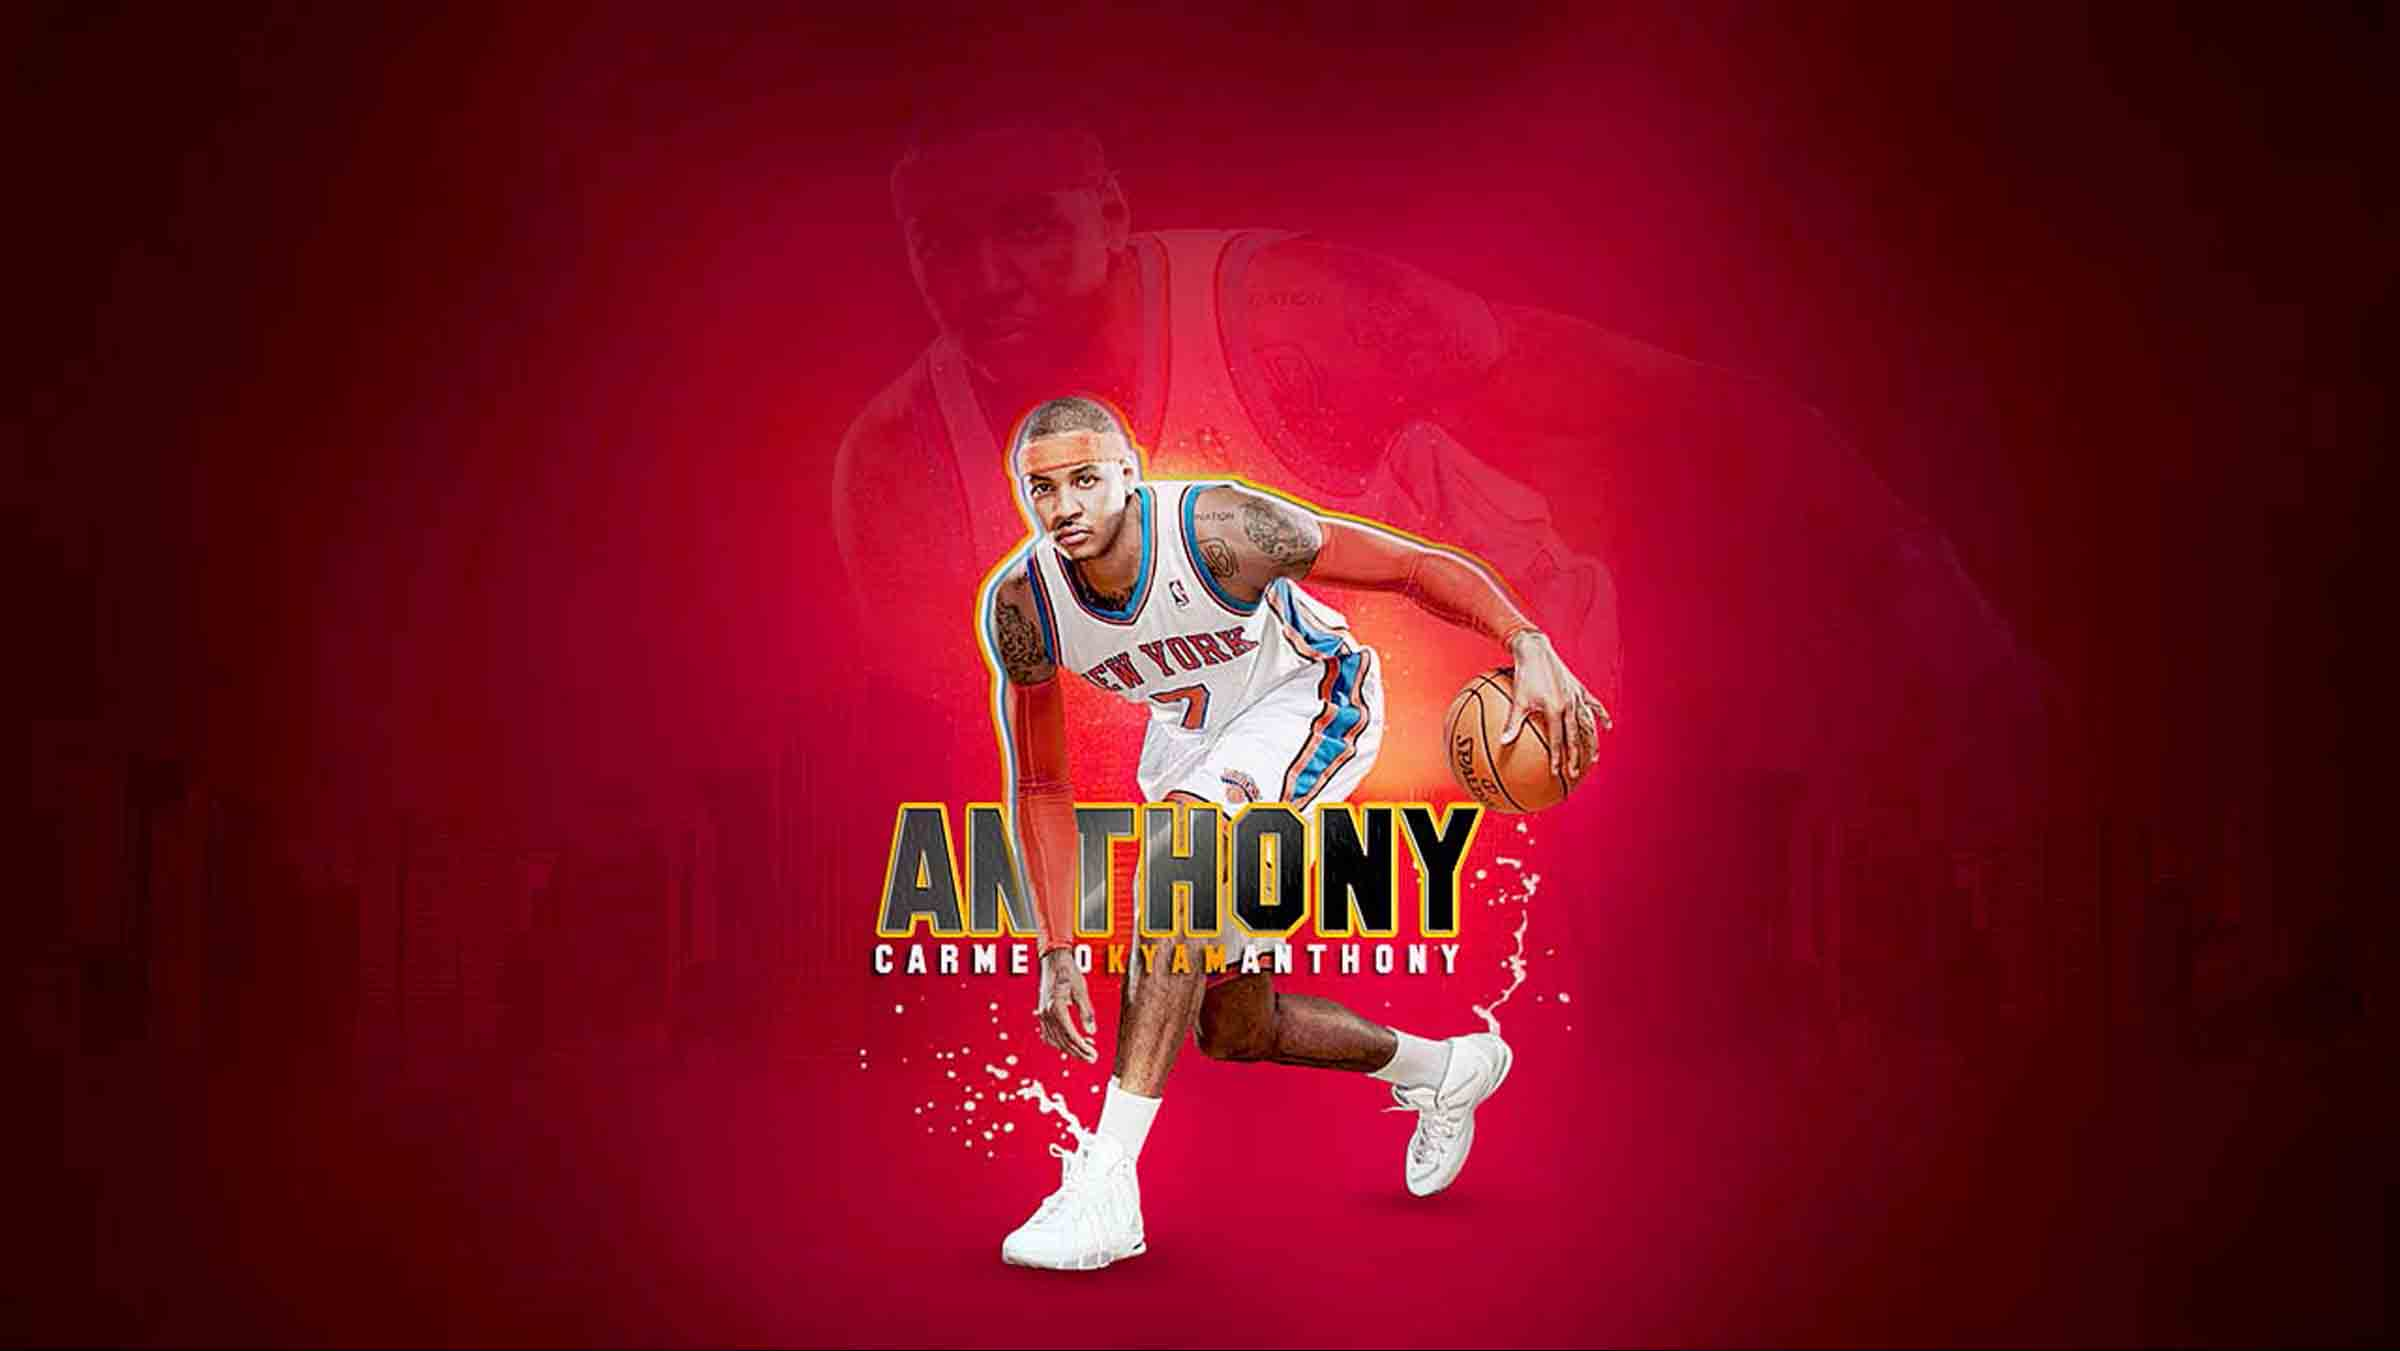 Download Carmelo Anthony Knicks Wallpaper High Resolution HD 2400x1351